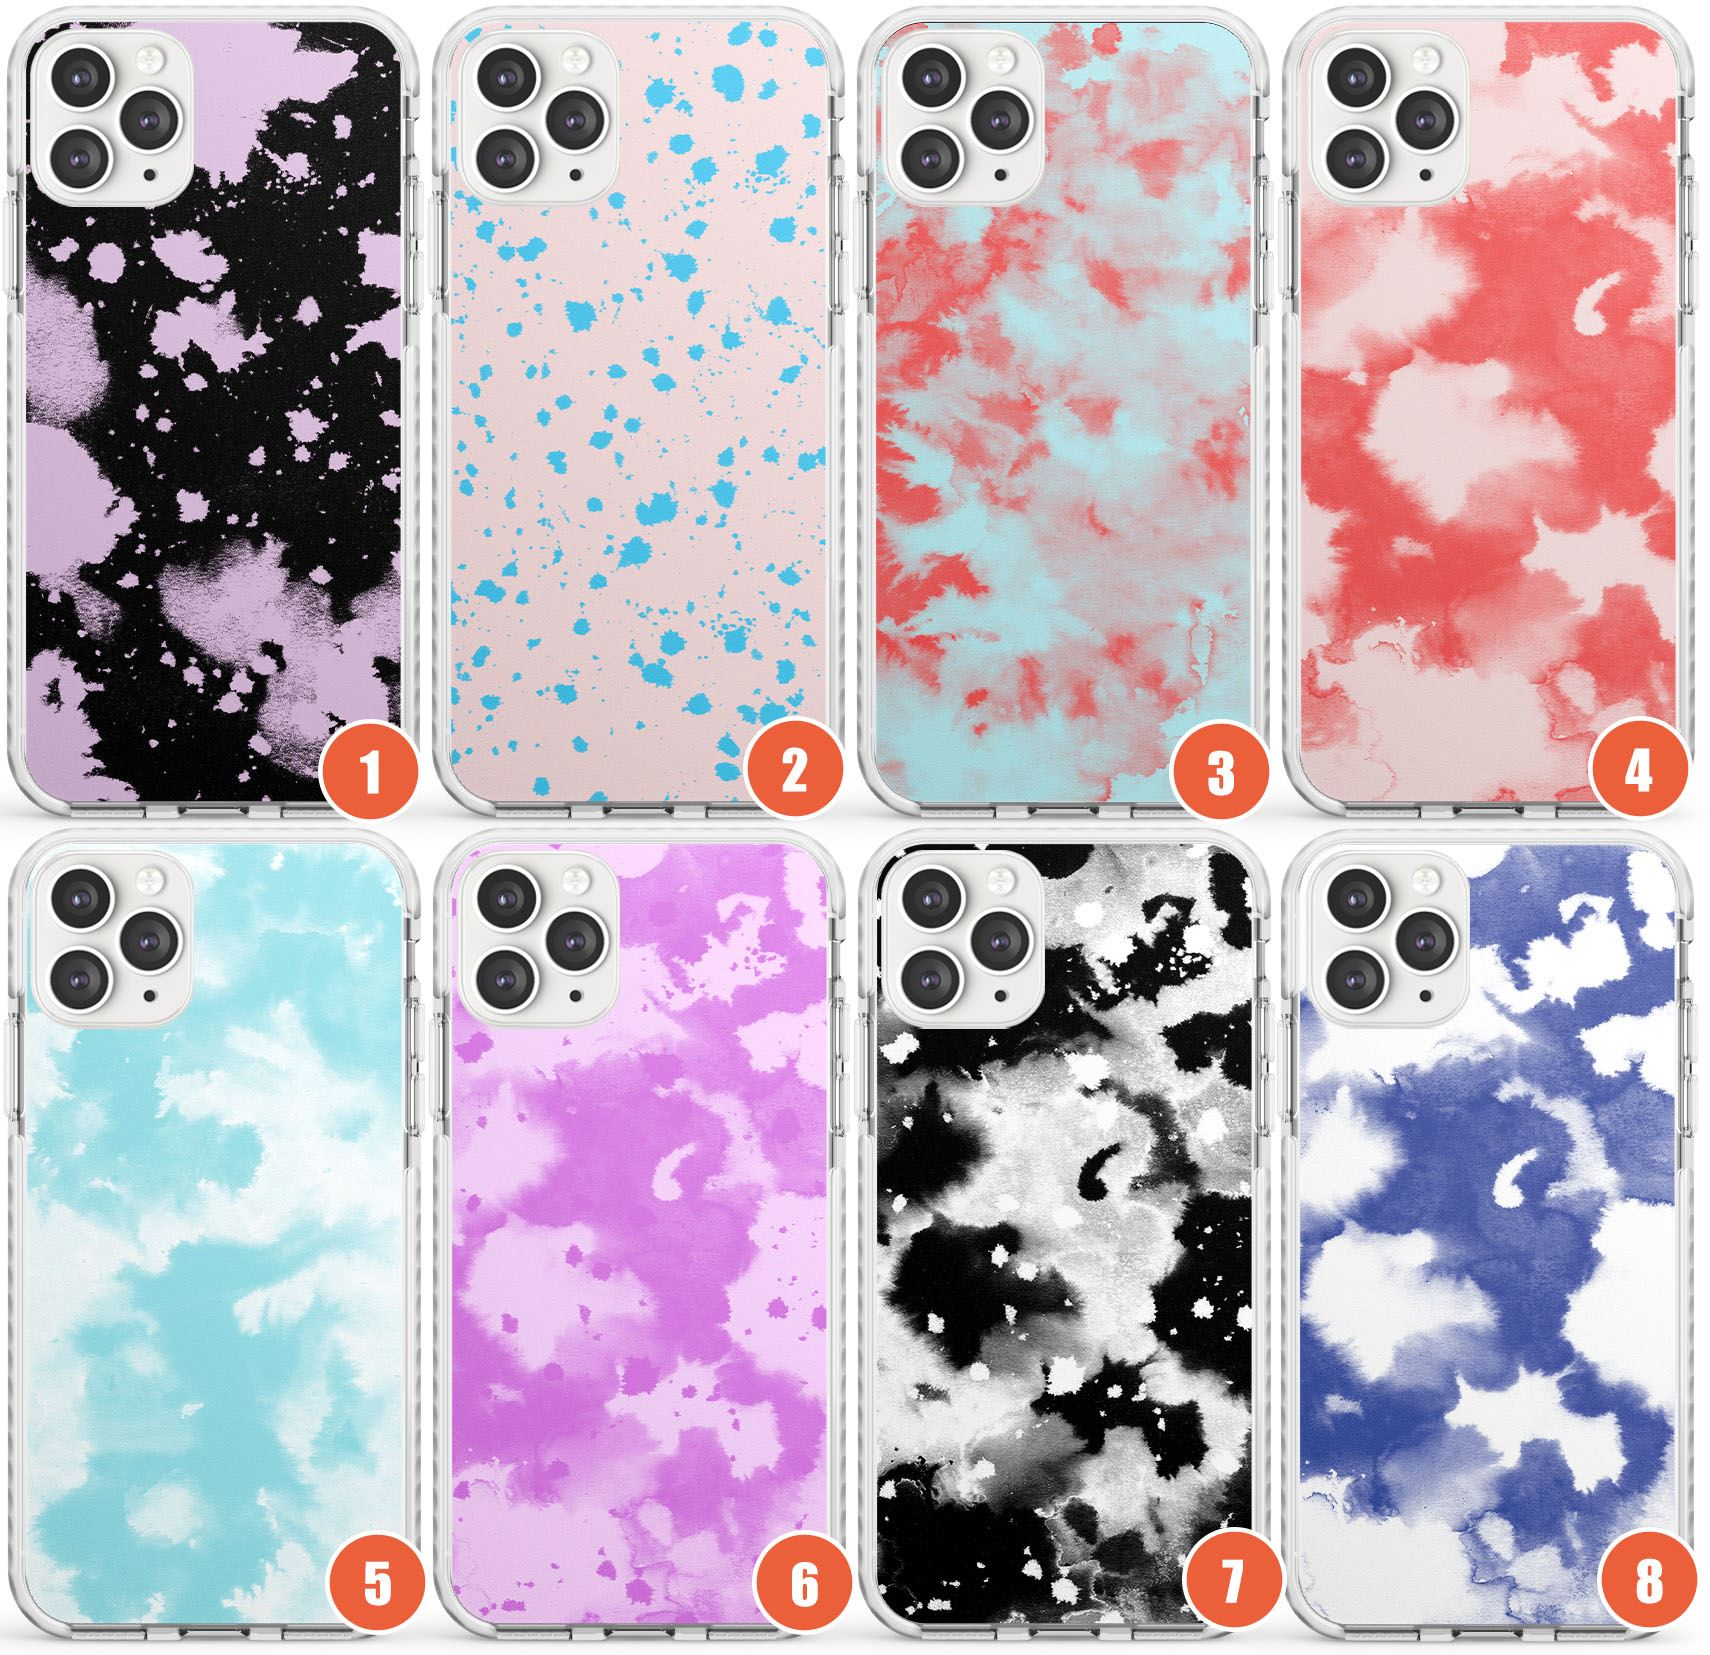 Acid Wash Tie Dye Patterns Impact Phone Case For Iphone Tie Dye Abstract Print Ebay